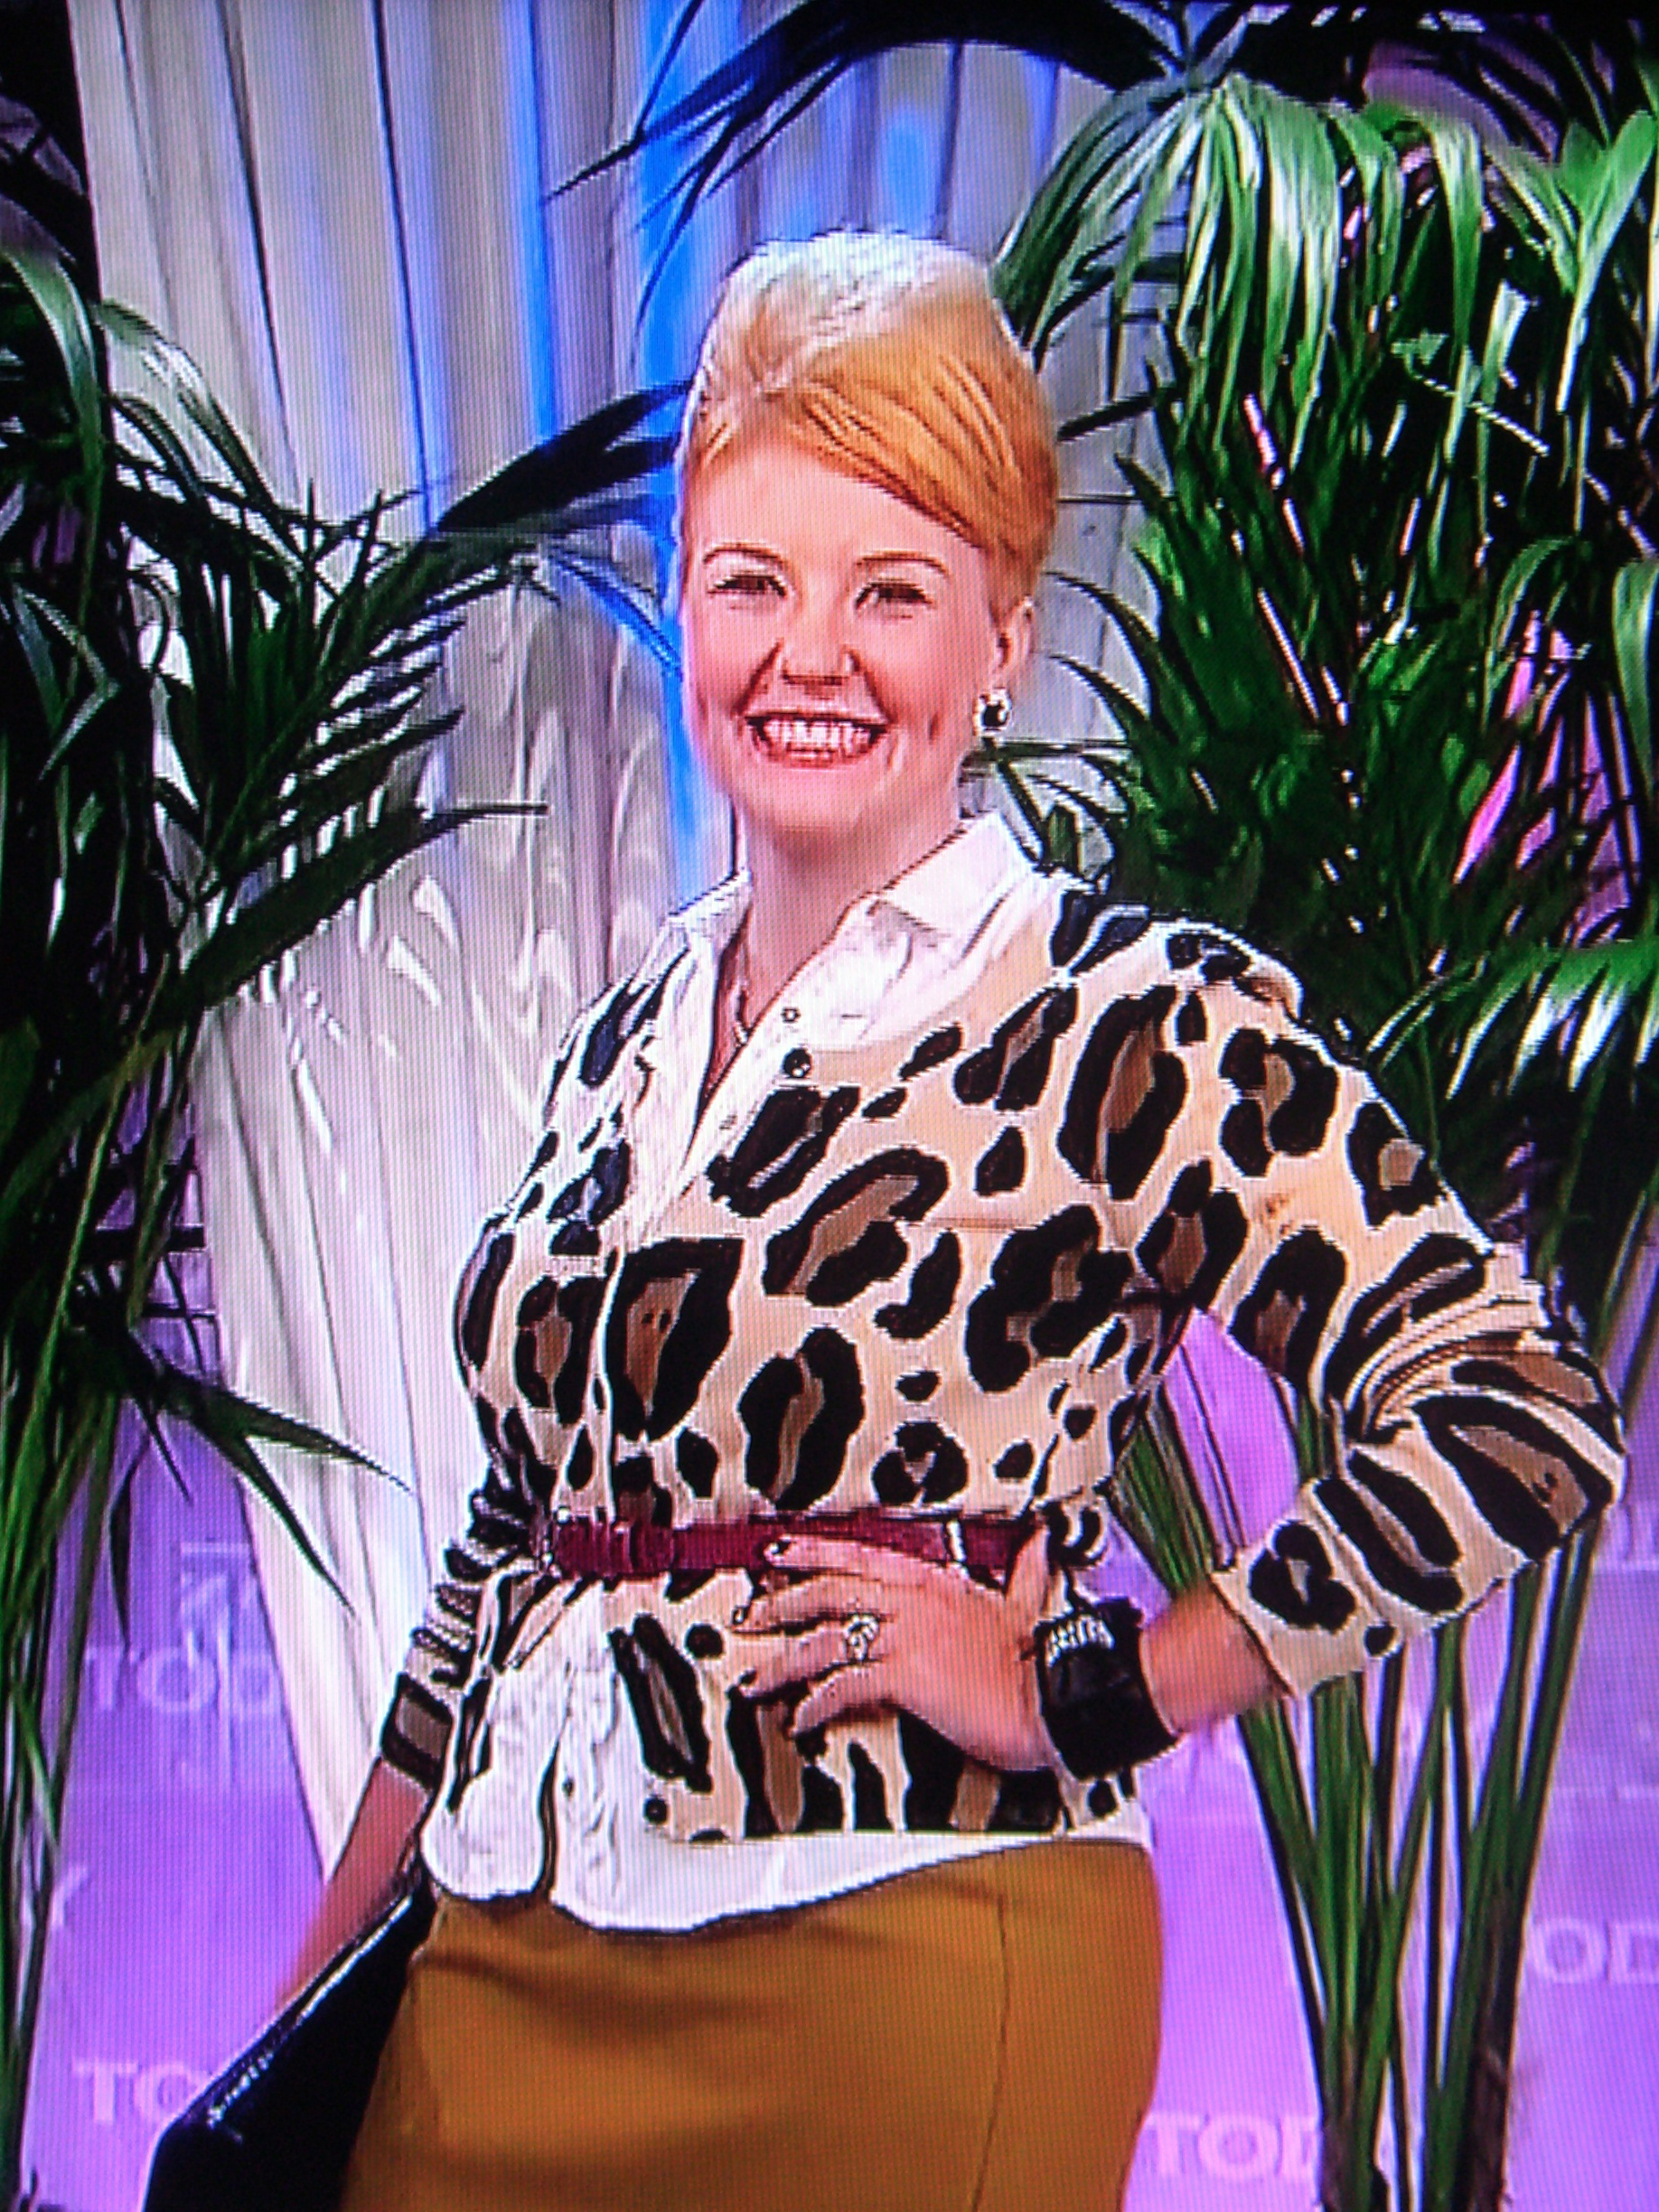 Today Show: Mad Men Fashion, September 3, 2010